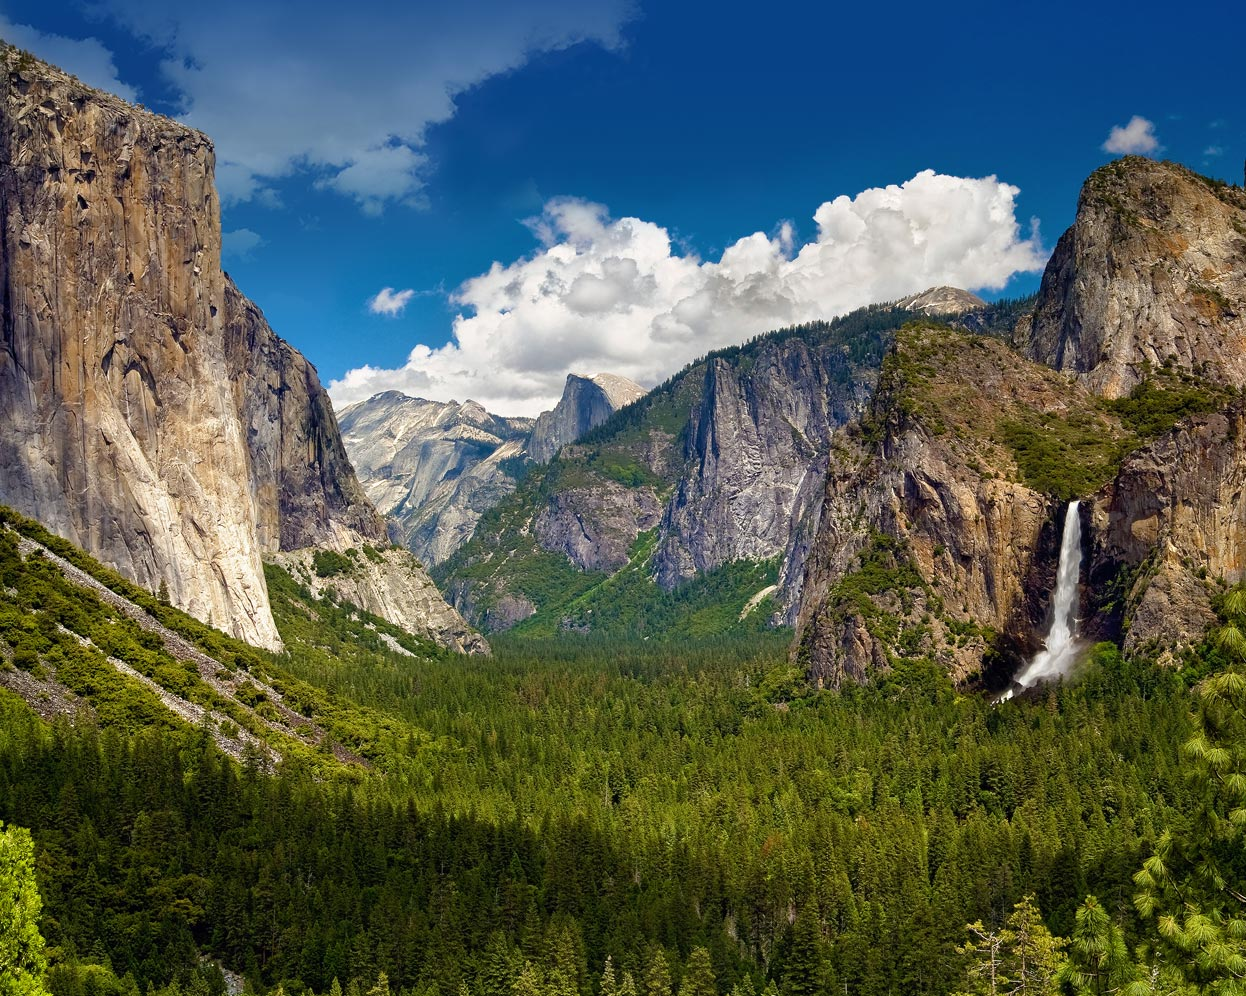 the history of the yosemite national park and the national parks system in america By placing yosemite valley and mariposa grove under federal protection in 1864, abraham lincoln paved the way for what would later become california's yosemite national park.